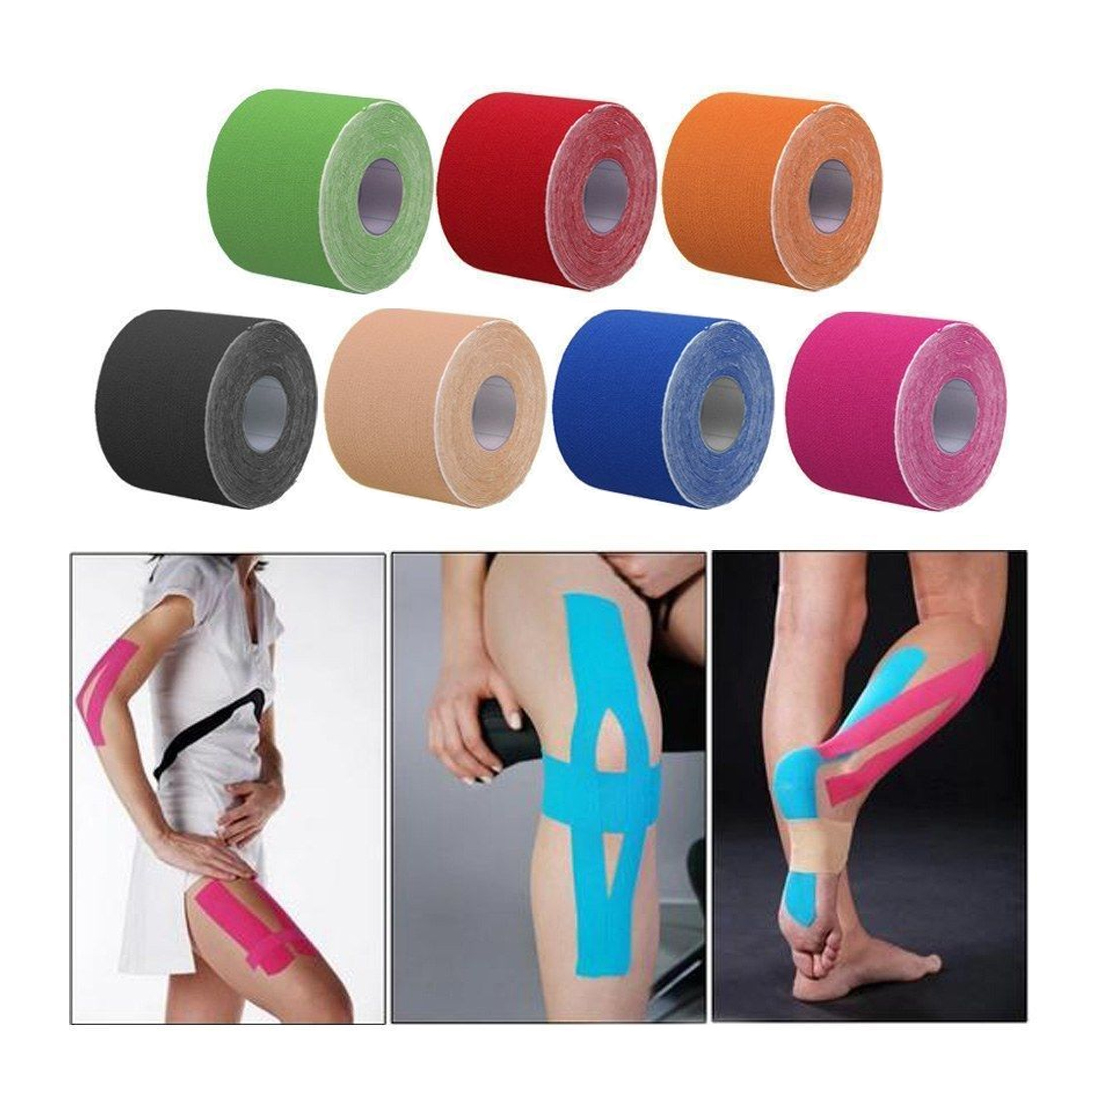 2.5cmx5m Waterproof Tape Athletic Kinesiology Tape Sport Taping Strapping Basketball Football Rodilleras Deportivas Muscle Tape